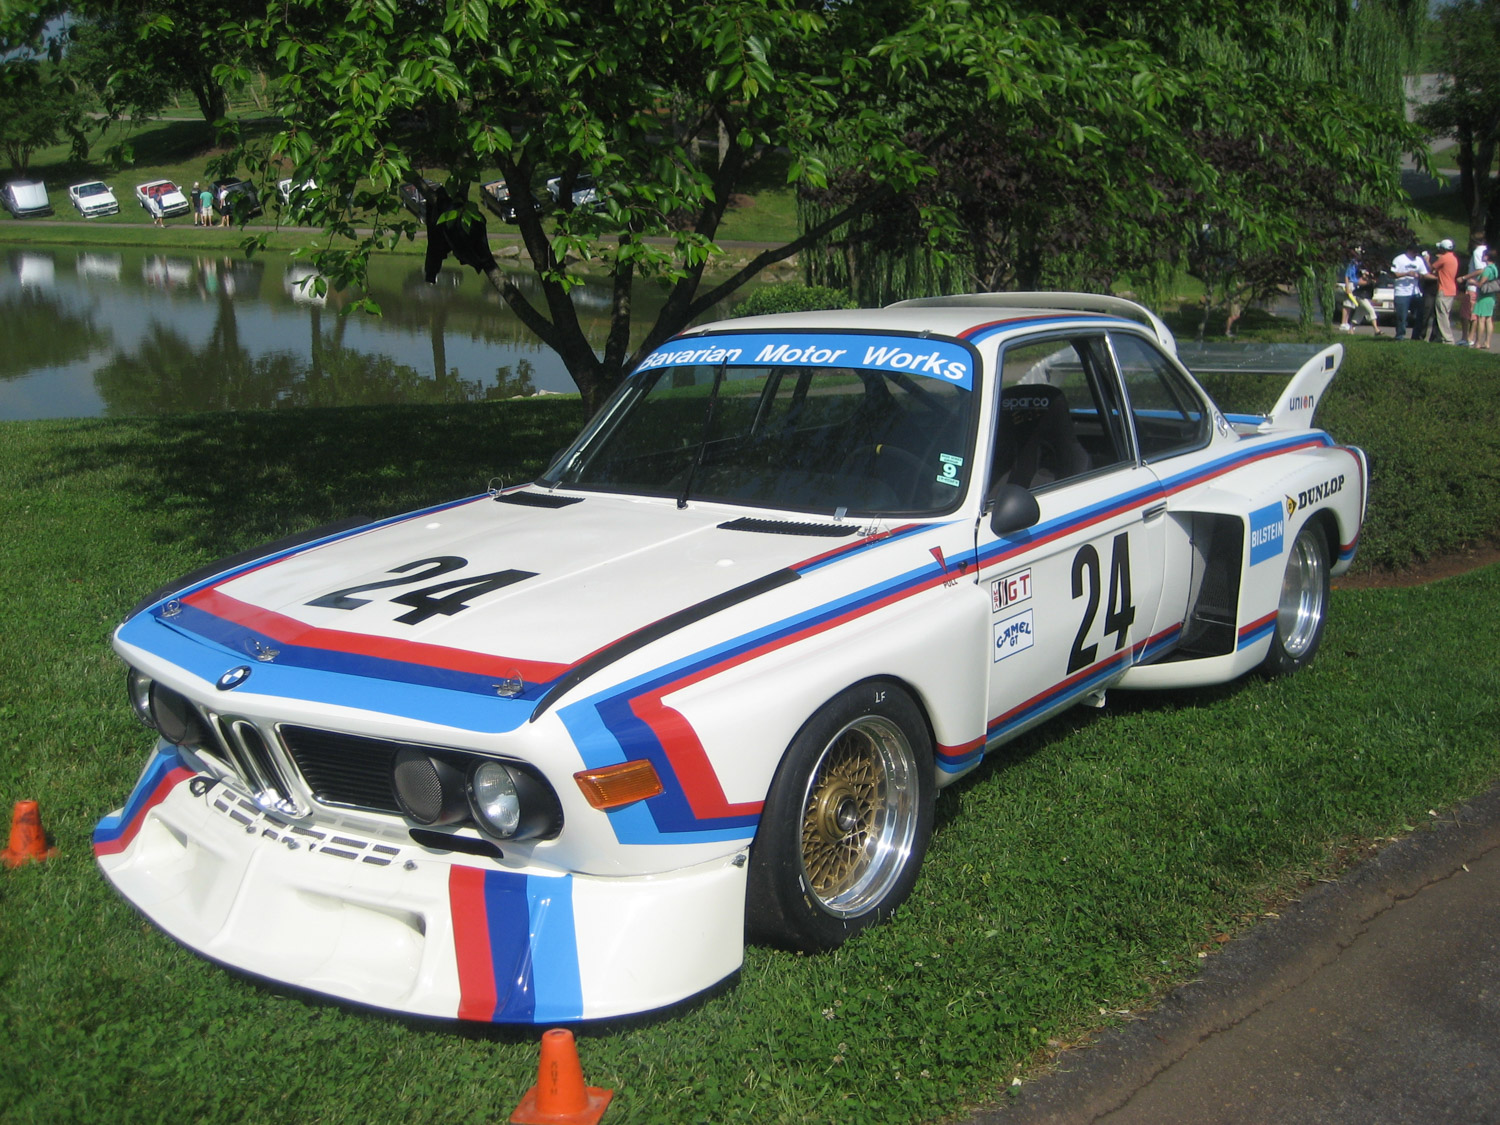 A Group 5 3.0CSL tribute car showing off its aerodynamic aids and scoops.